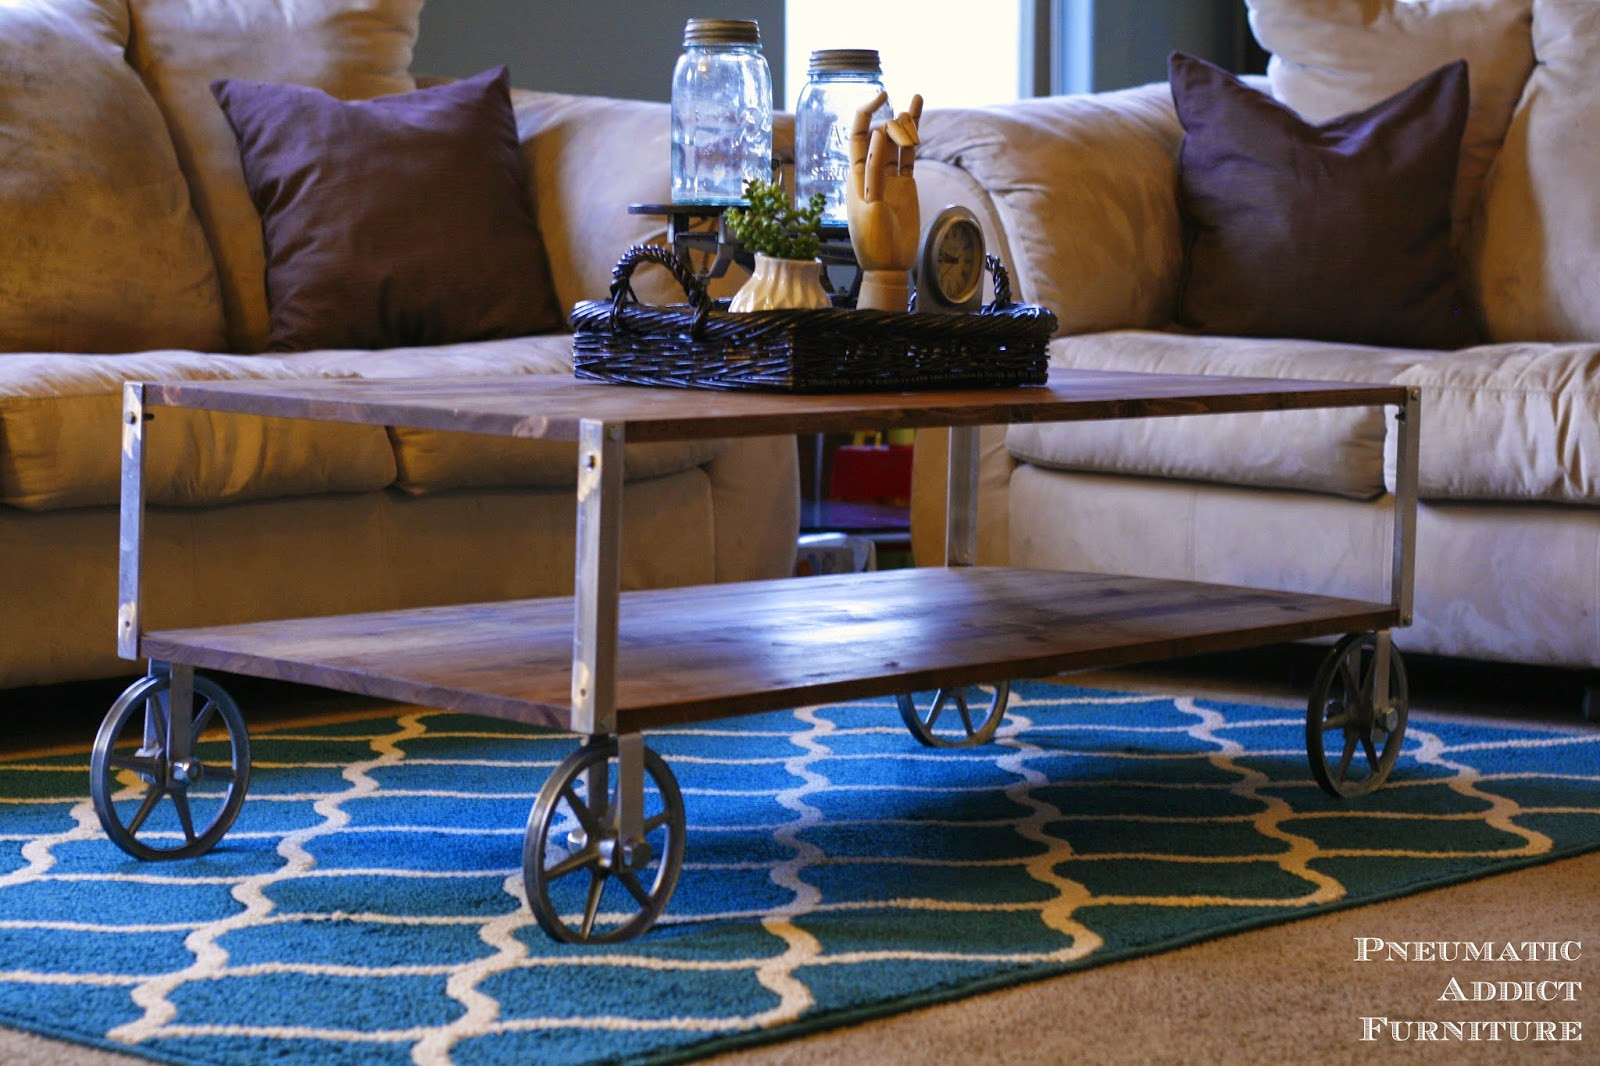 Best ideas about DIY Industrial Coffee Table . Save or Pin EASY Industrial Coffee Table No Welding Now.